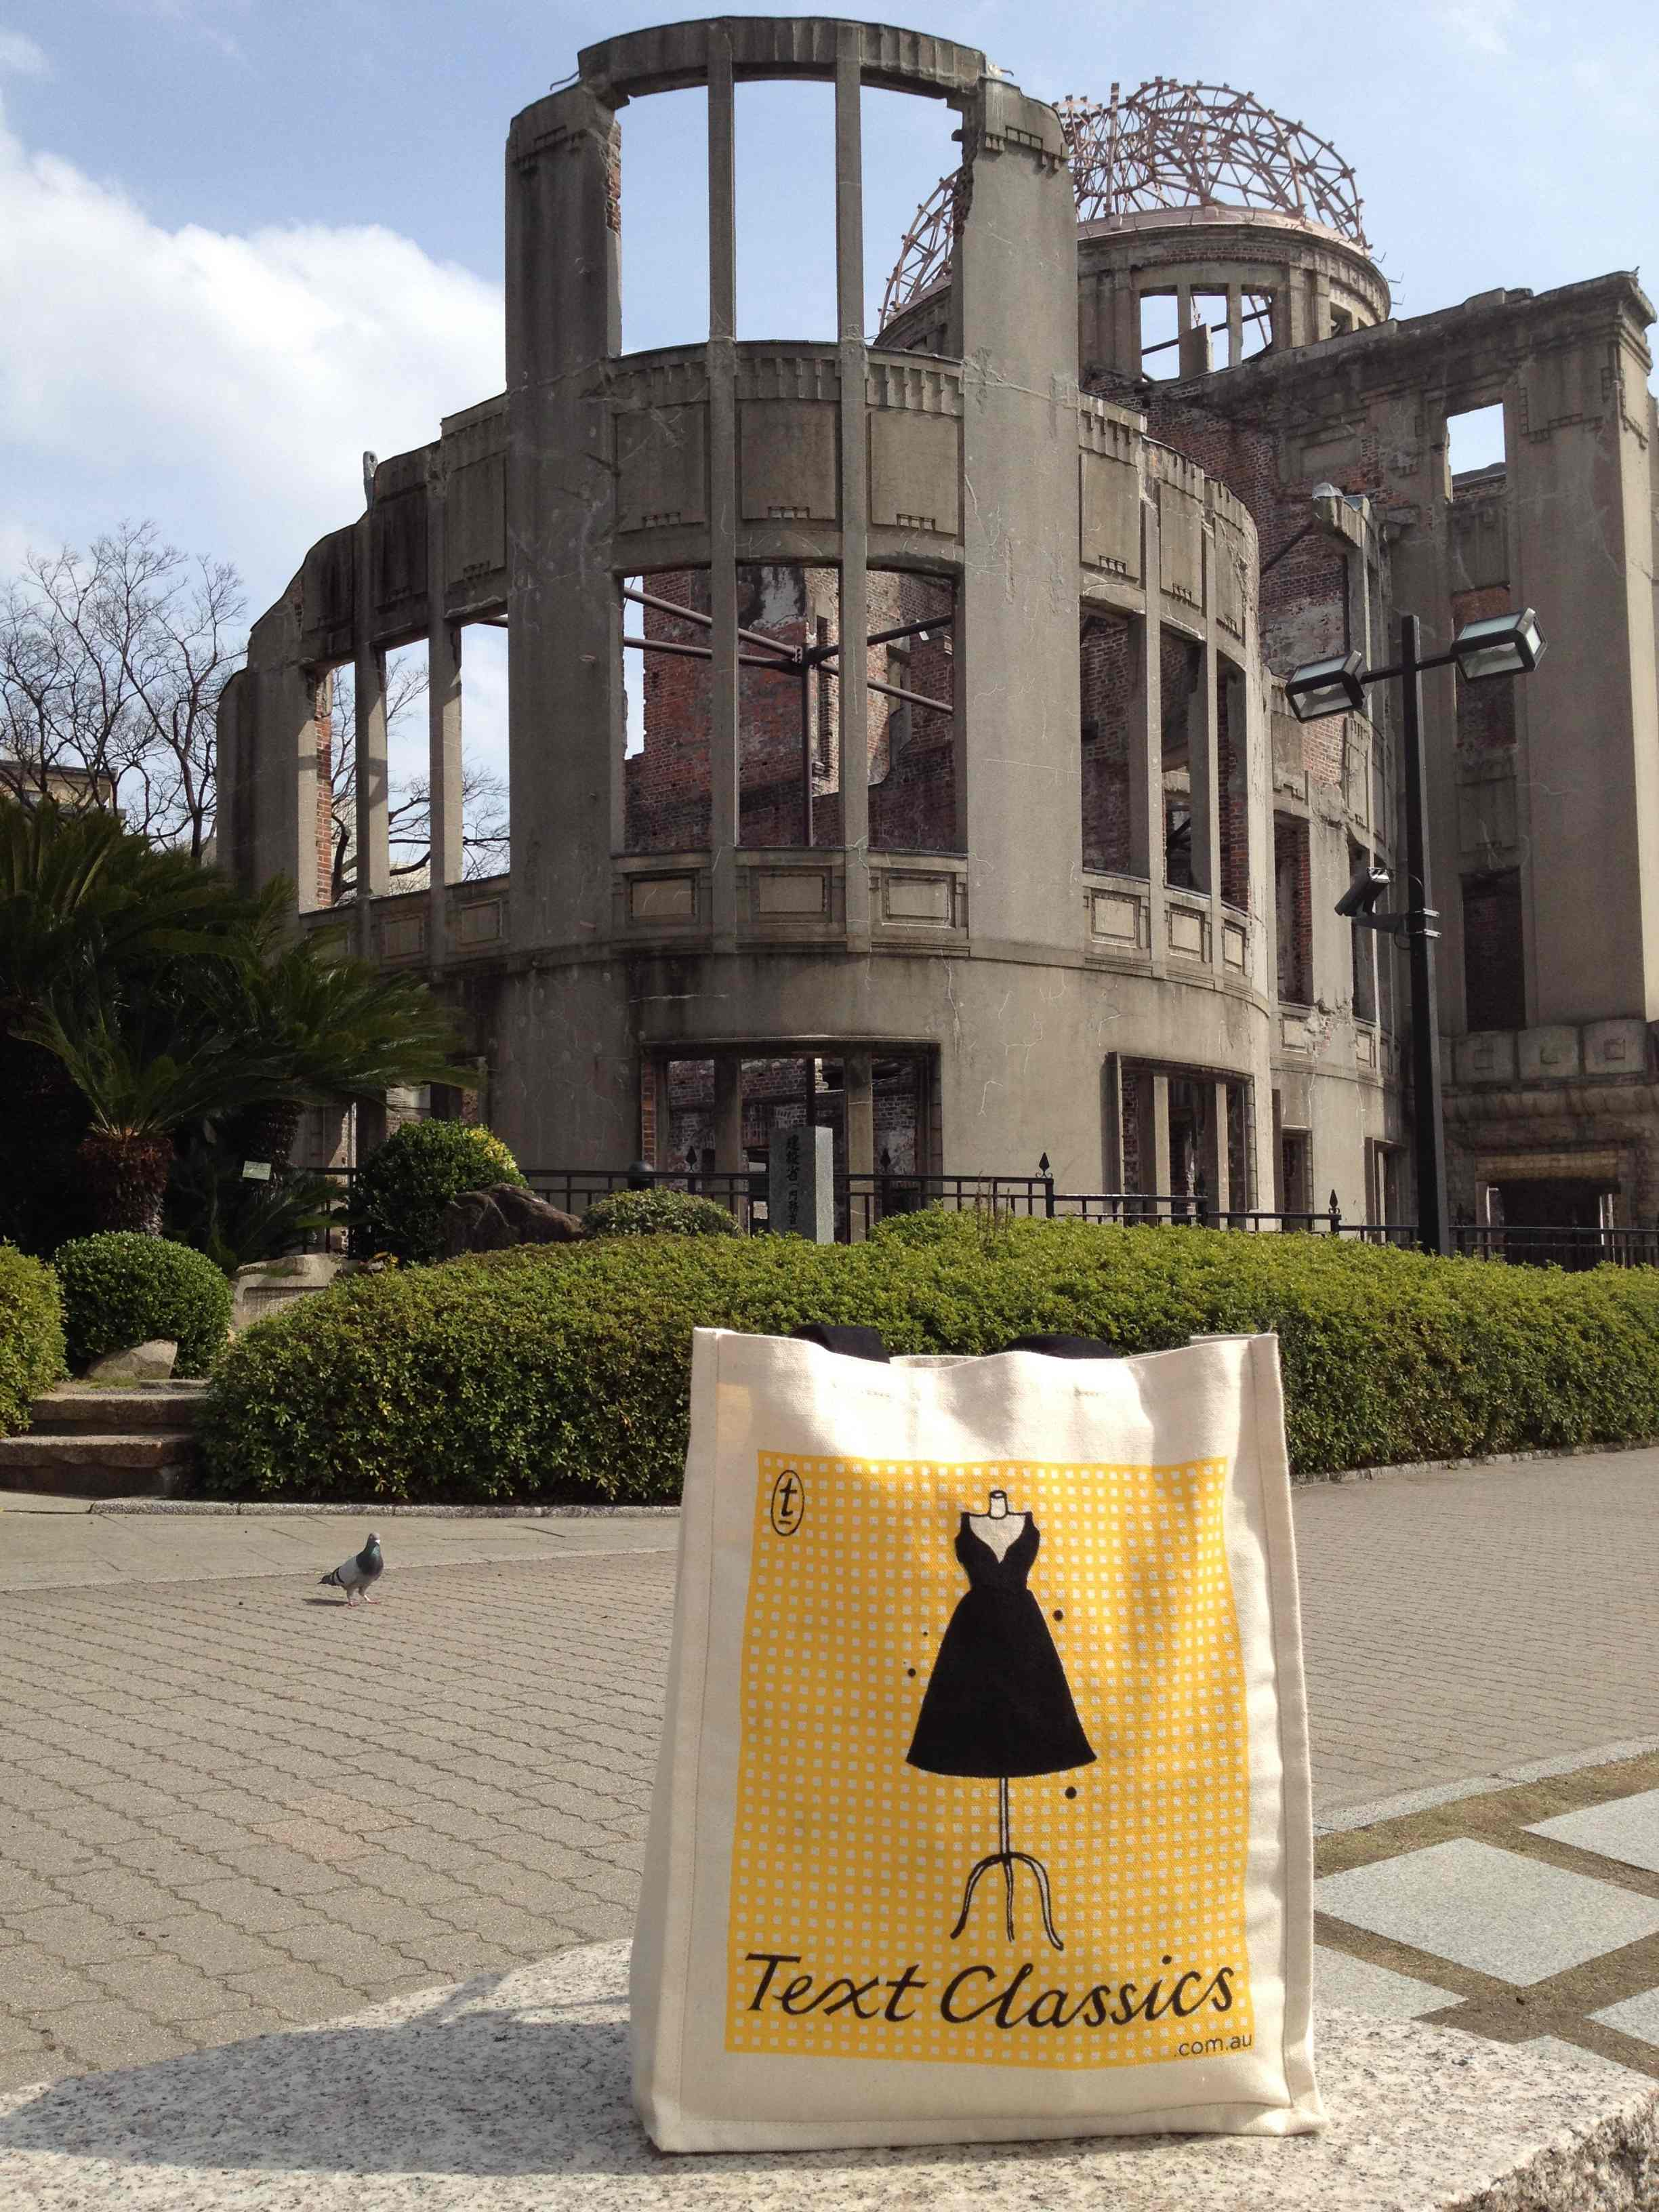 Text Classics find a trip to the A-bomb Dome in Hiroshima a sobering experience